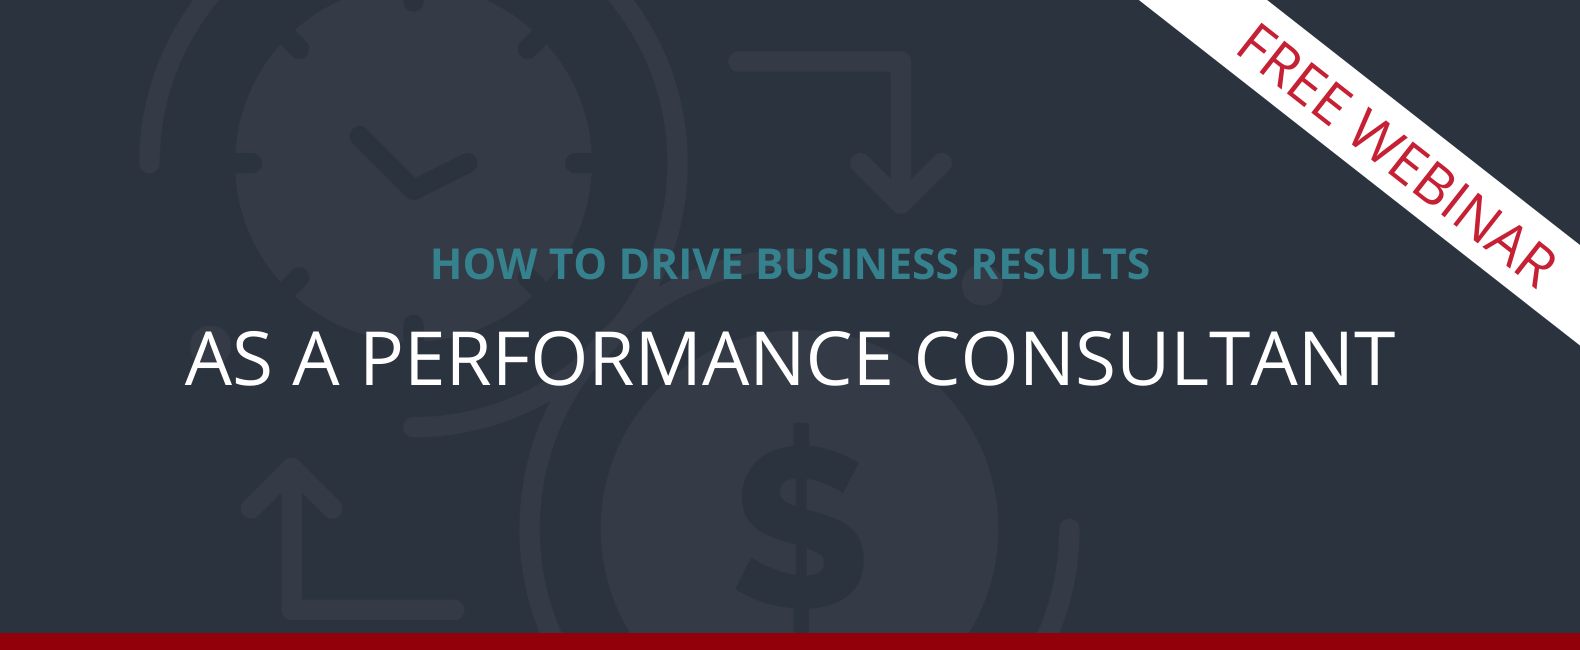 How To Drive Business Results Performance Consultant